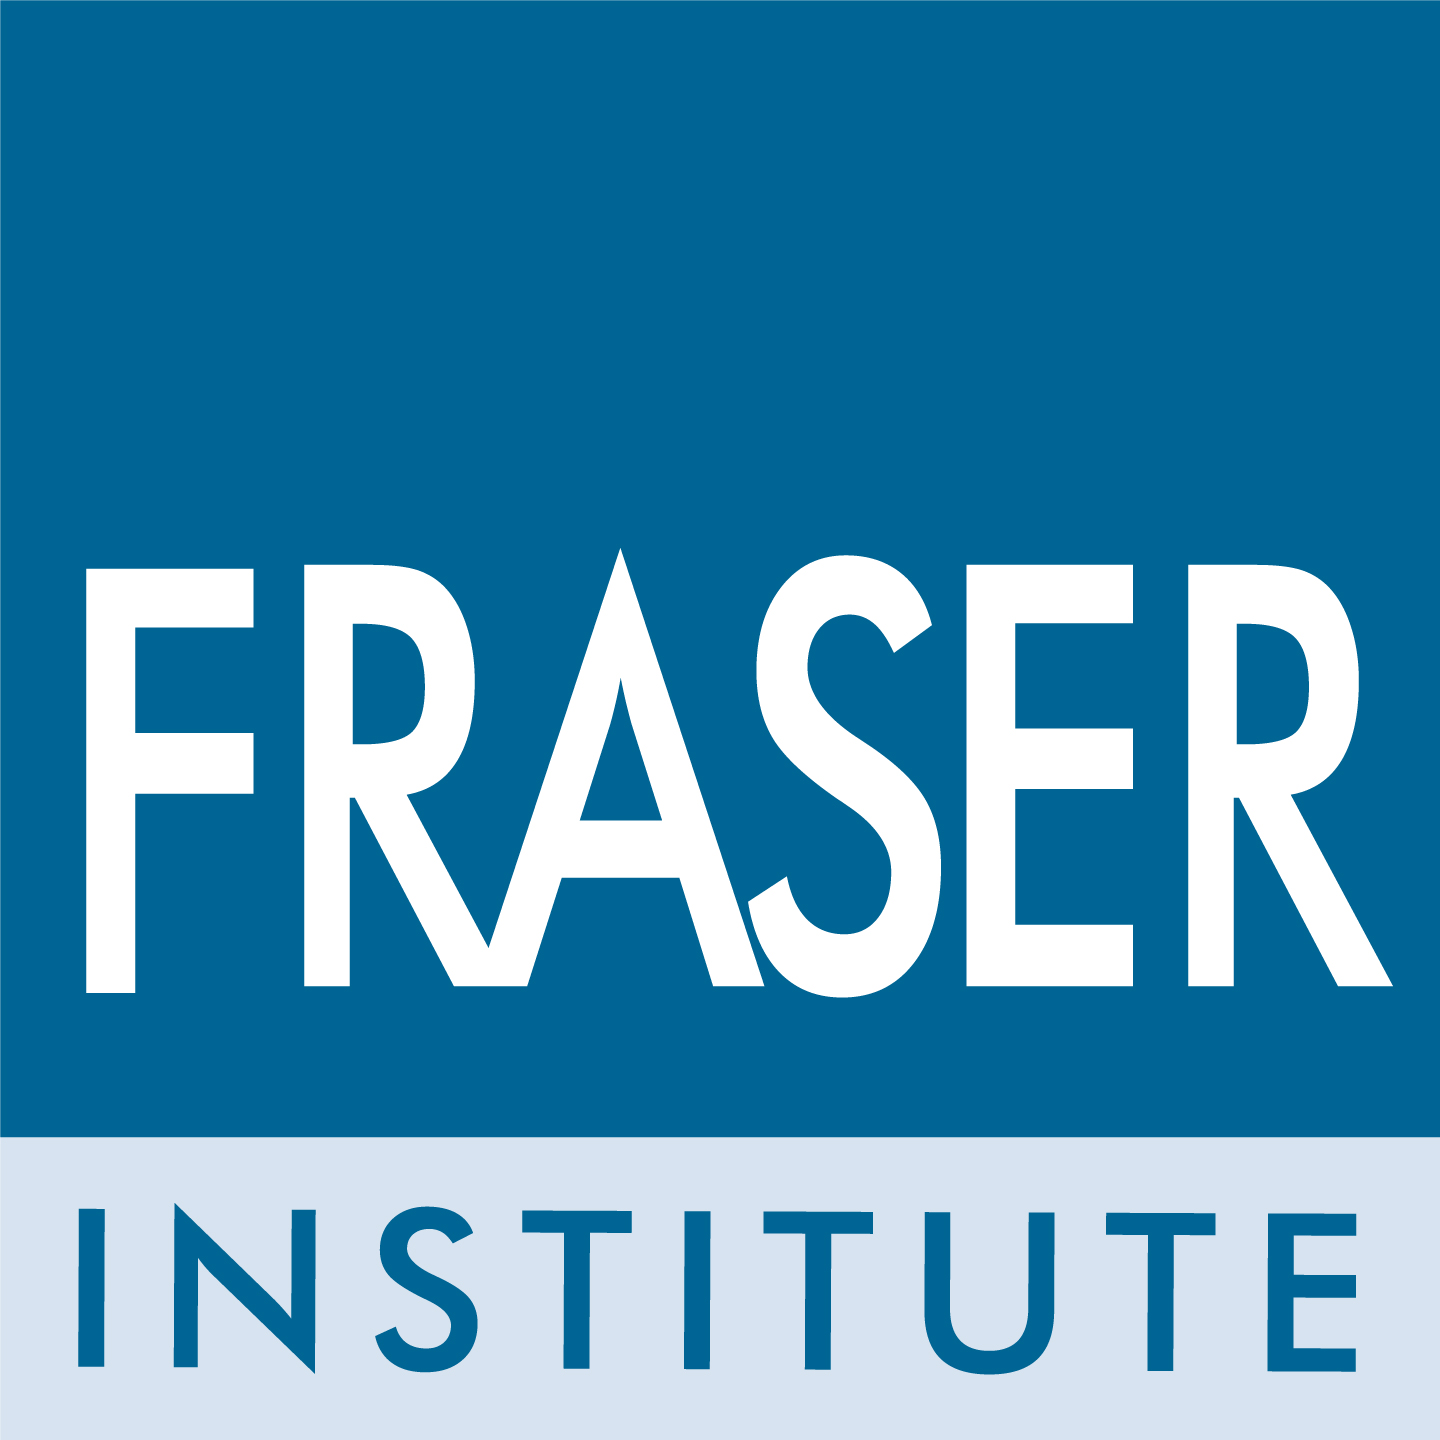 Fraser Institute News Release: Living standards declining in nearly one in five First Nation communities in Canada